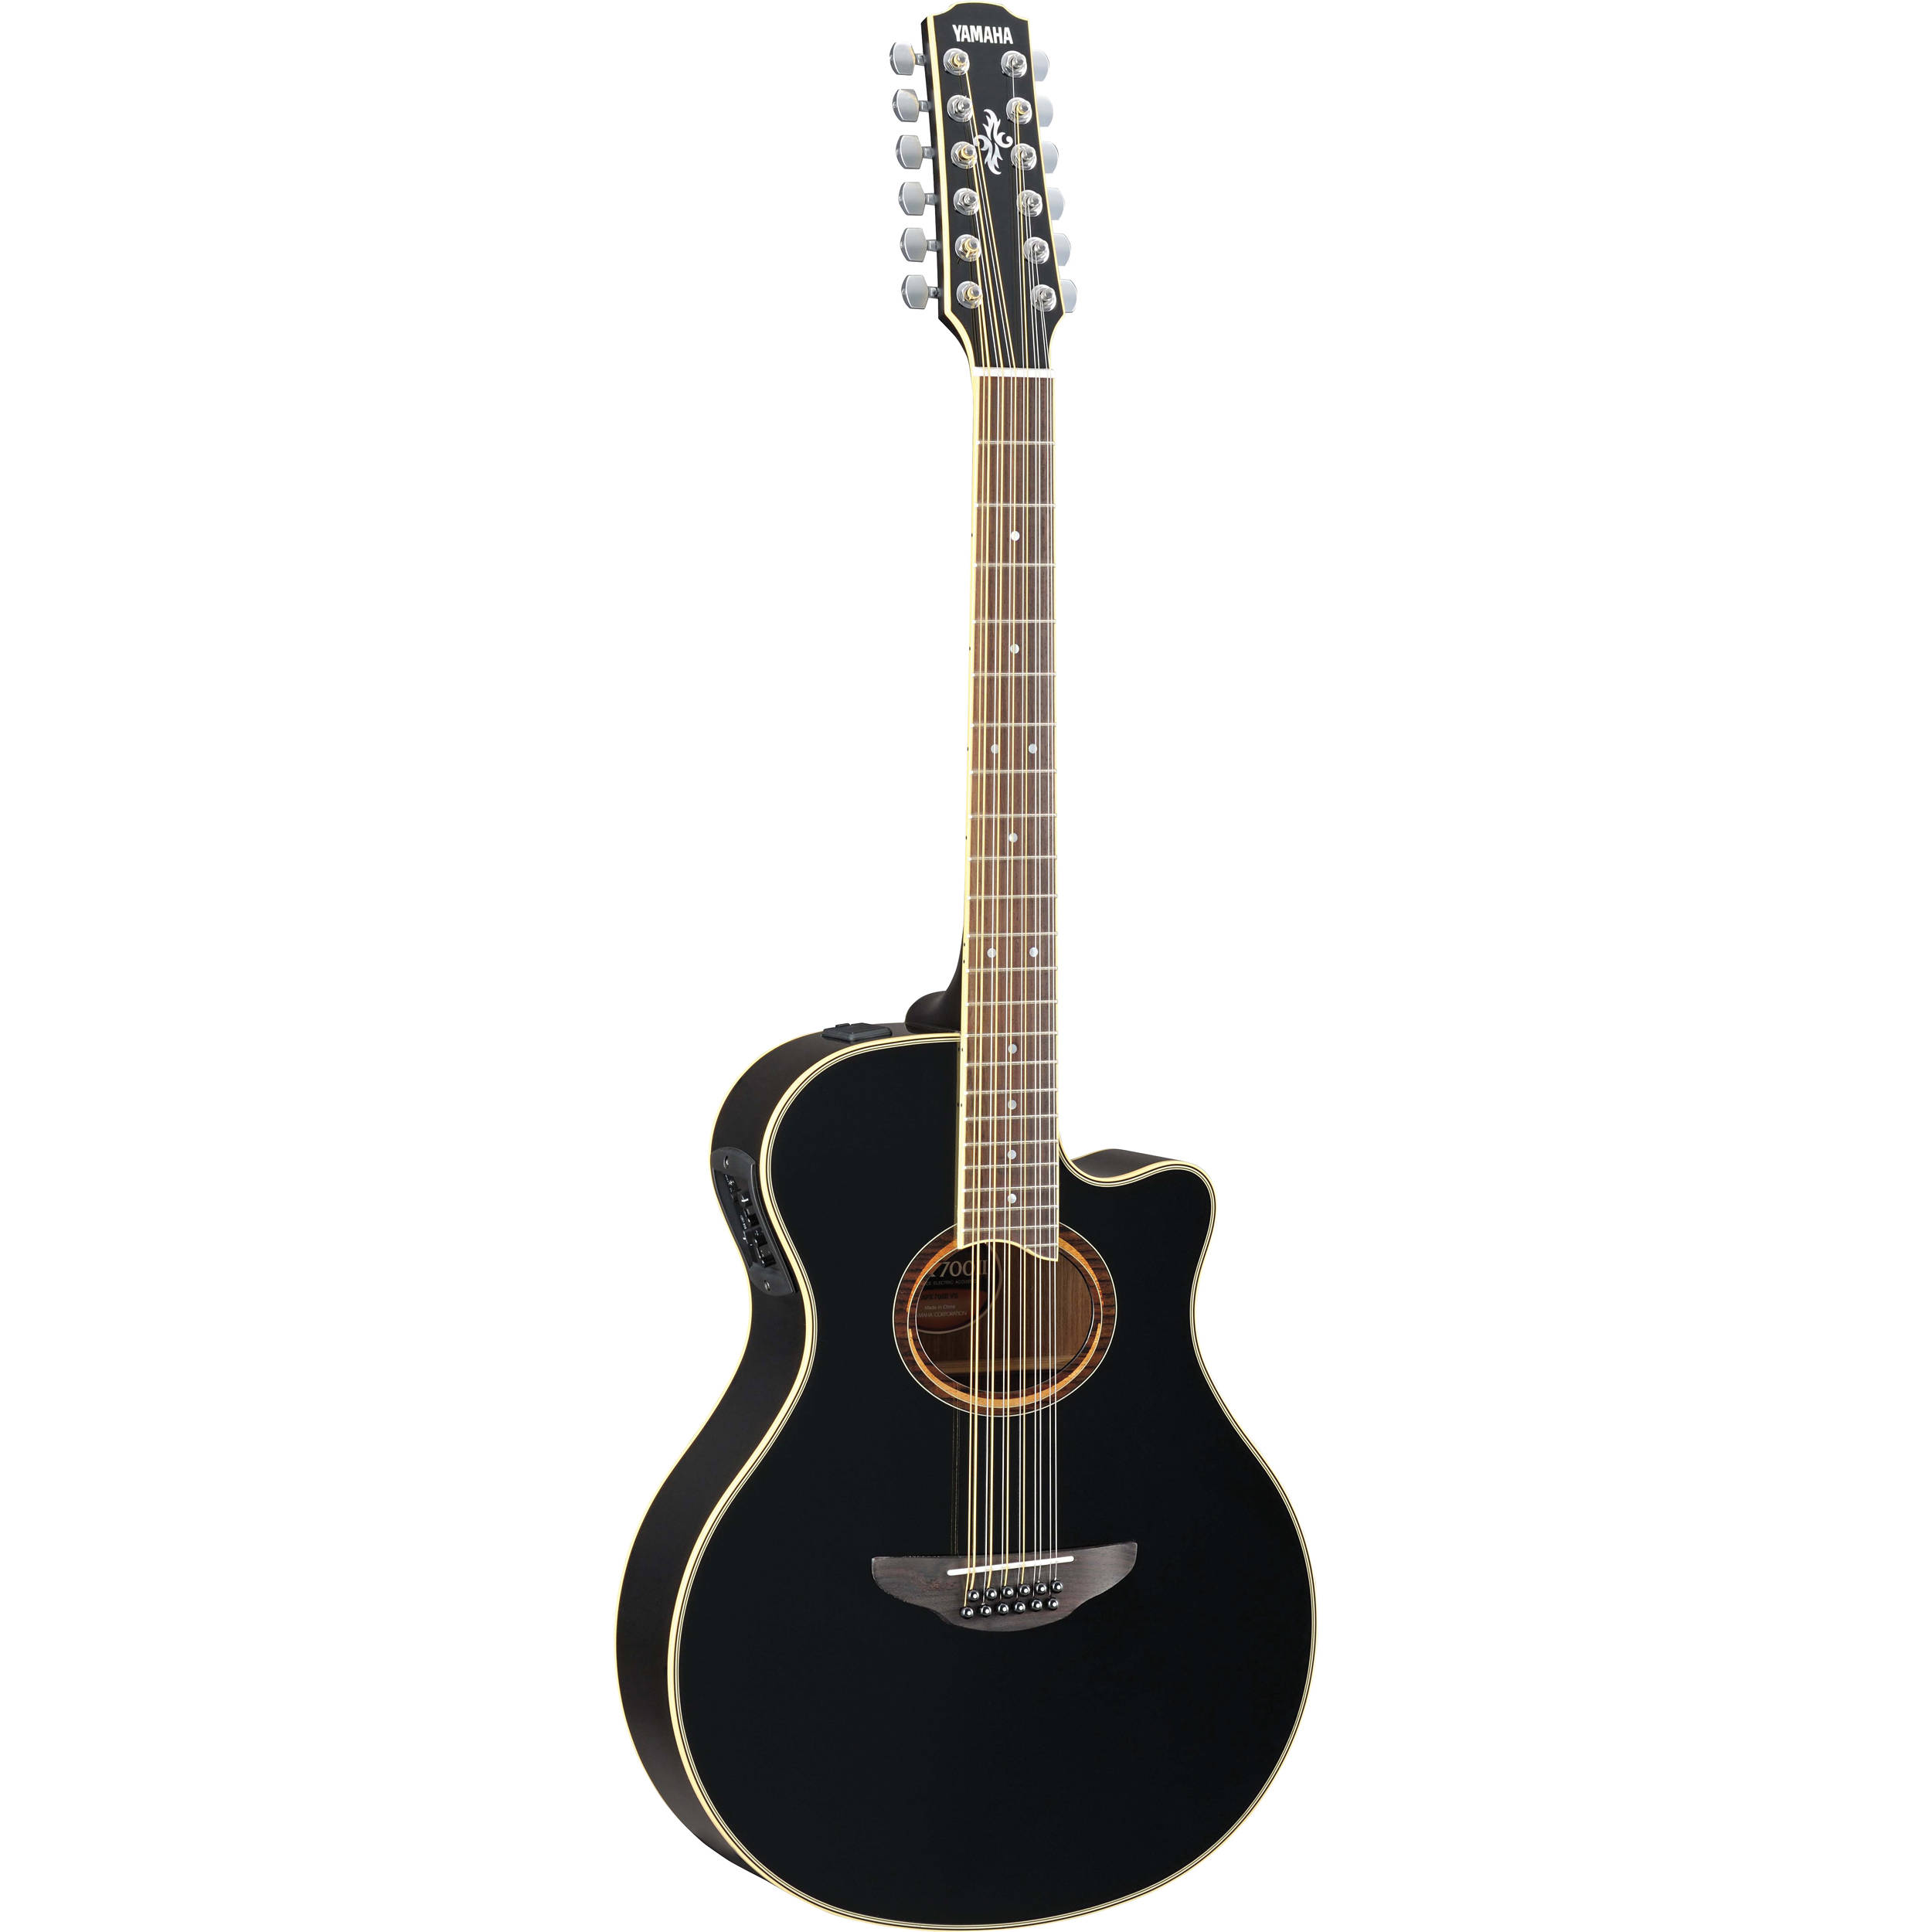 Yamaha Apx Ii Thinline Acoustic Electric Guitar